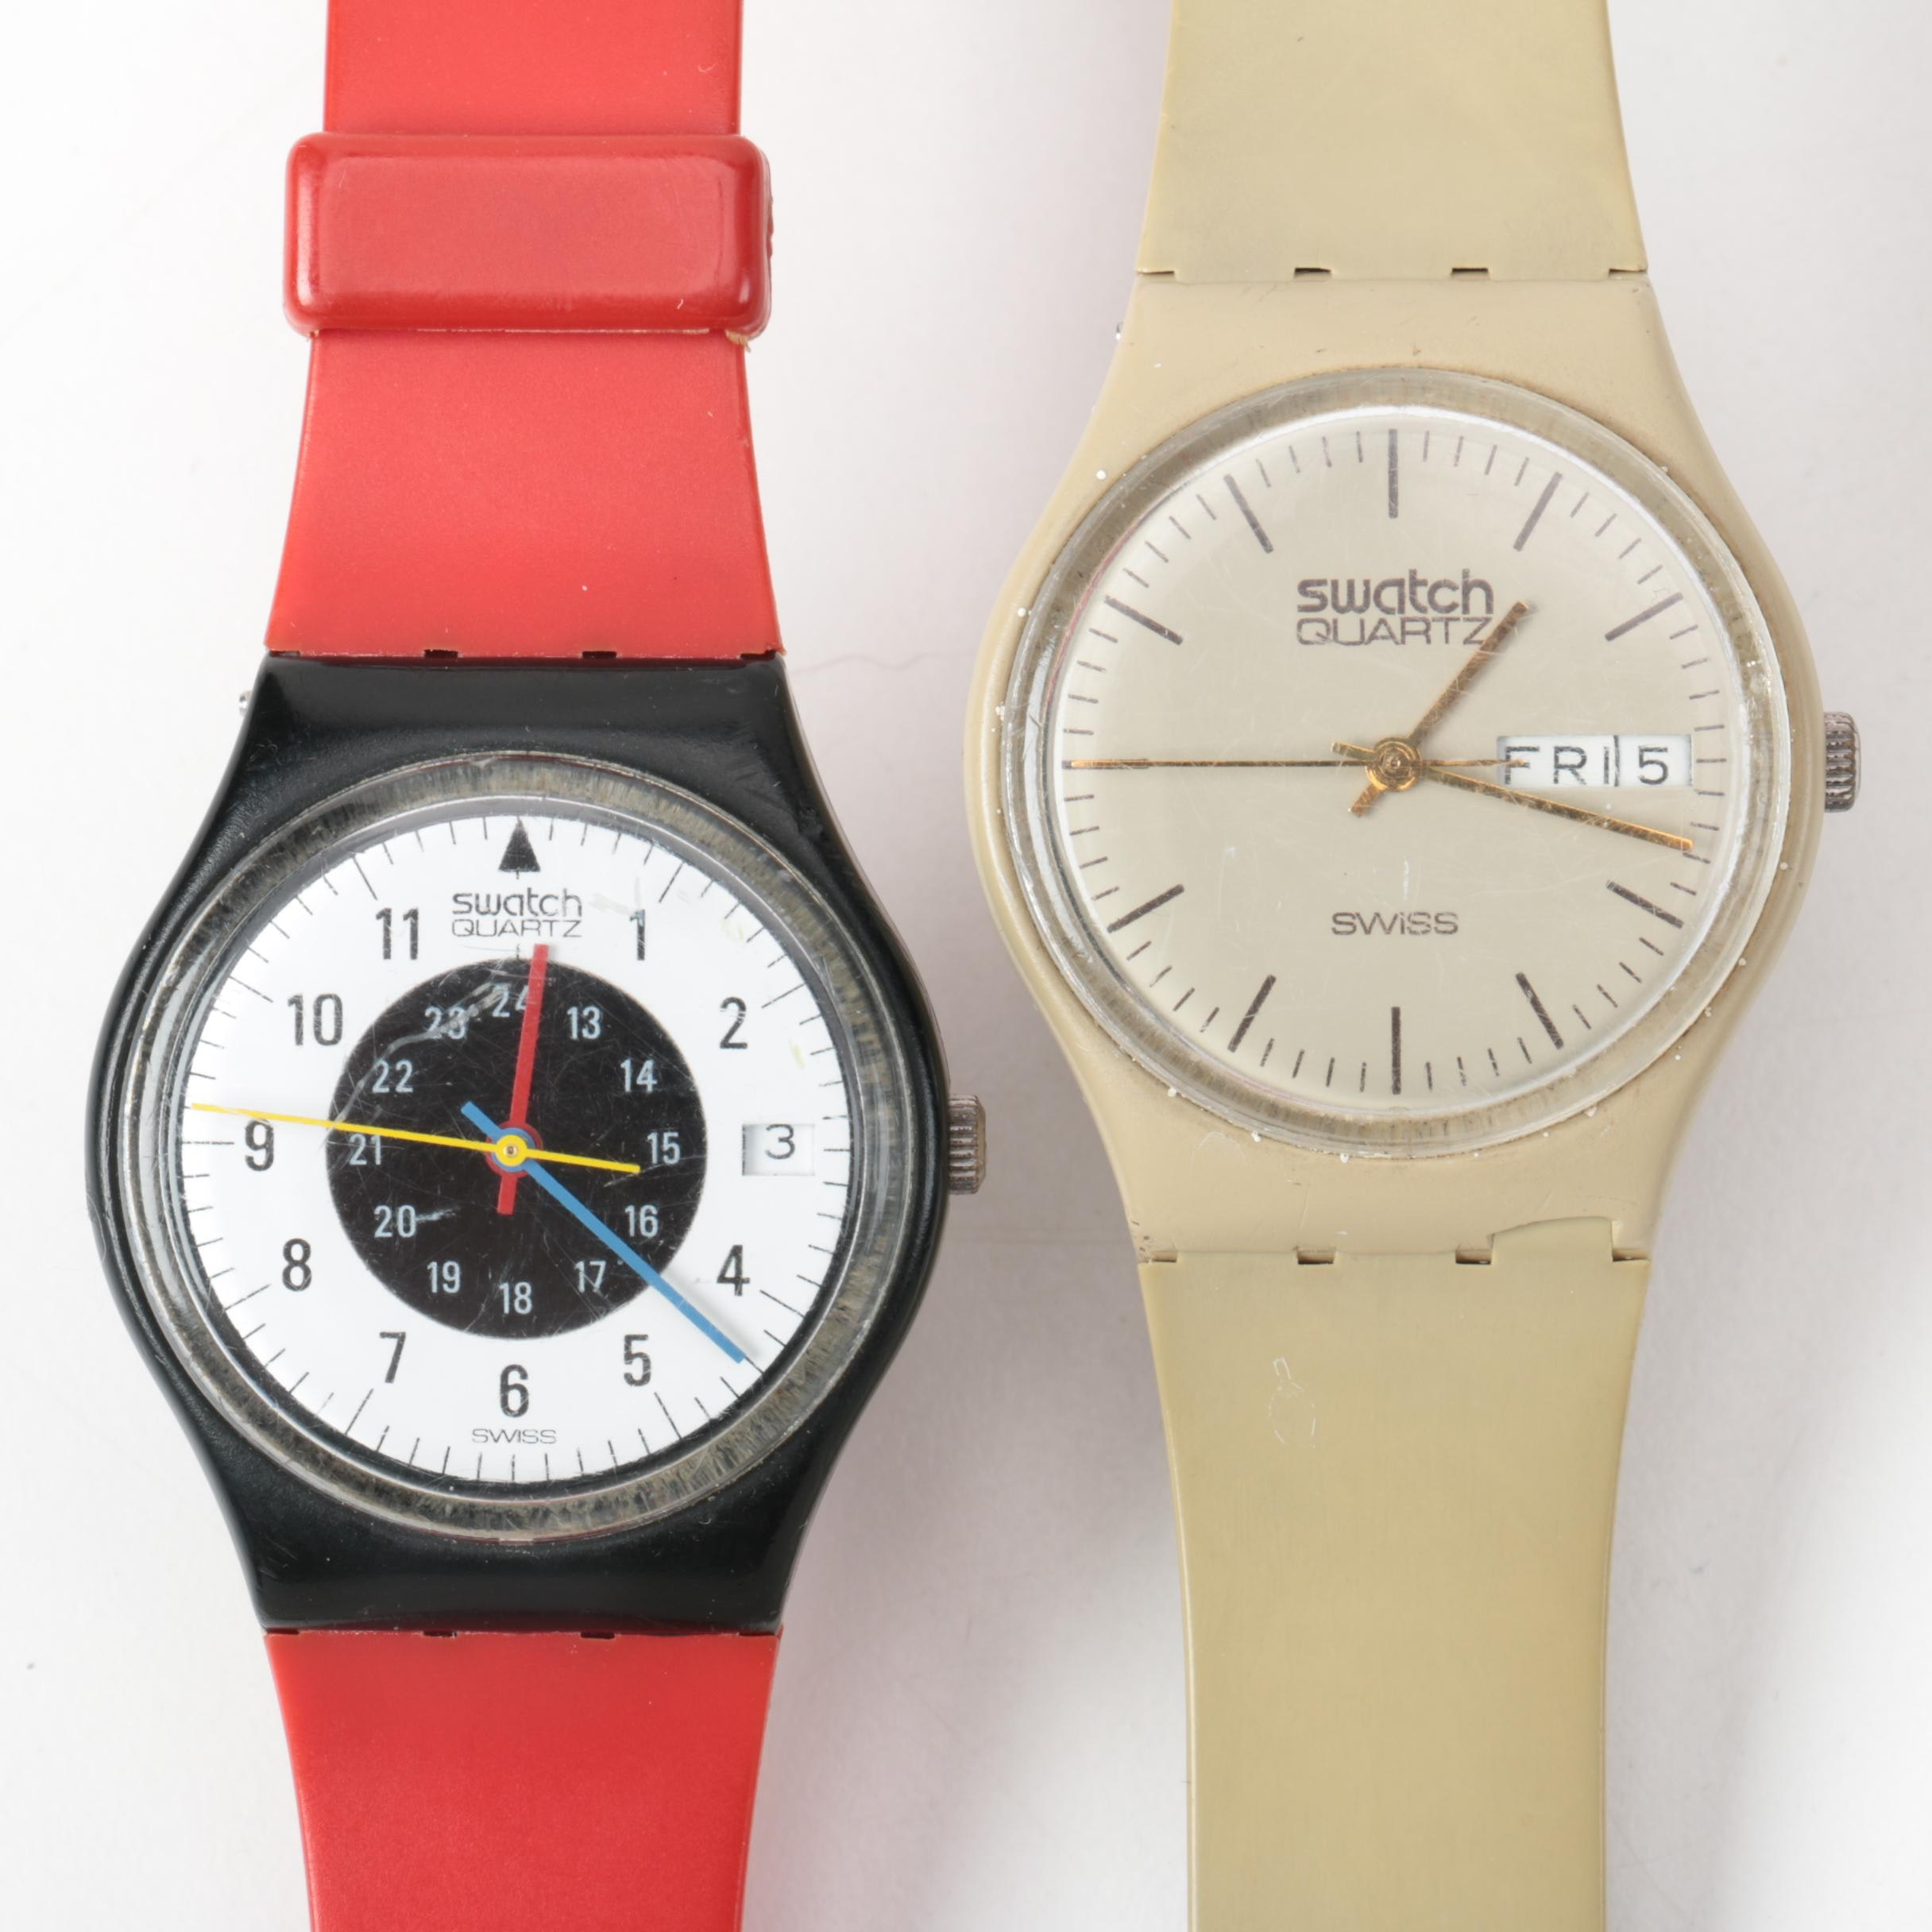 Pair of Swatch Analog Wristwatches